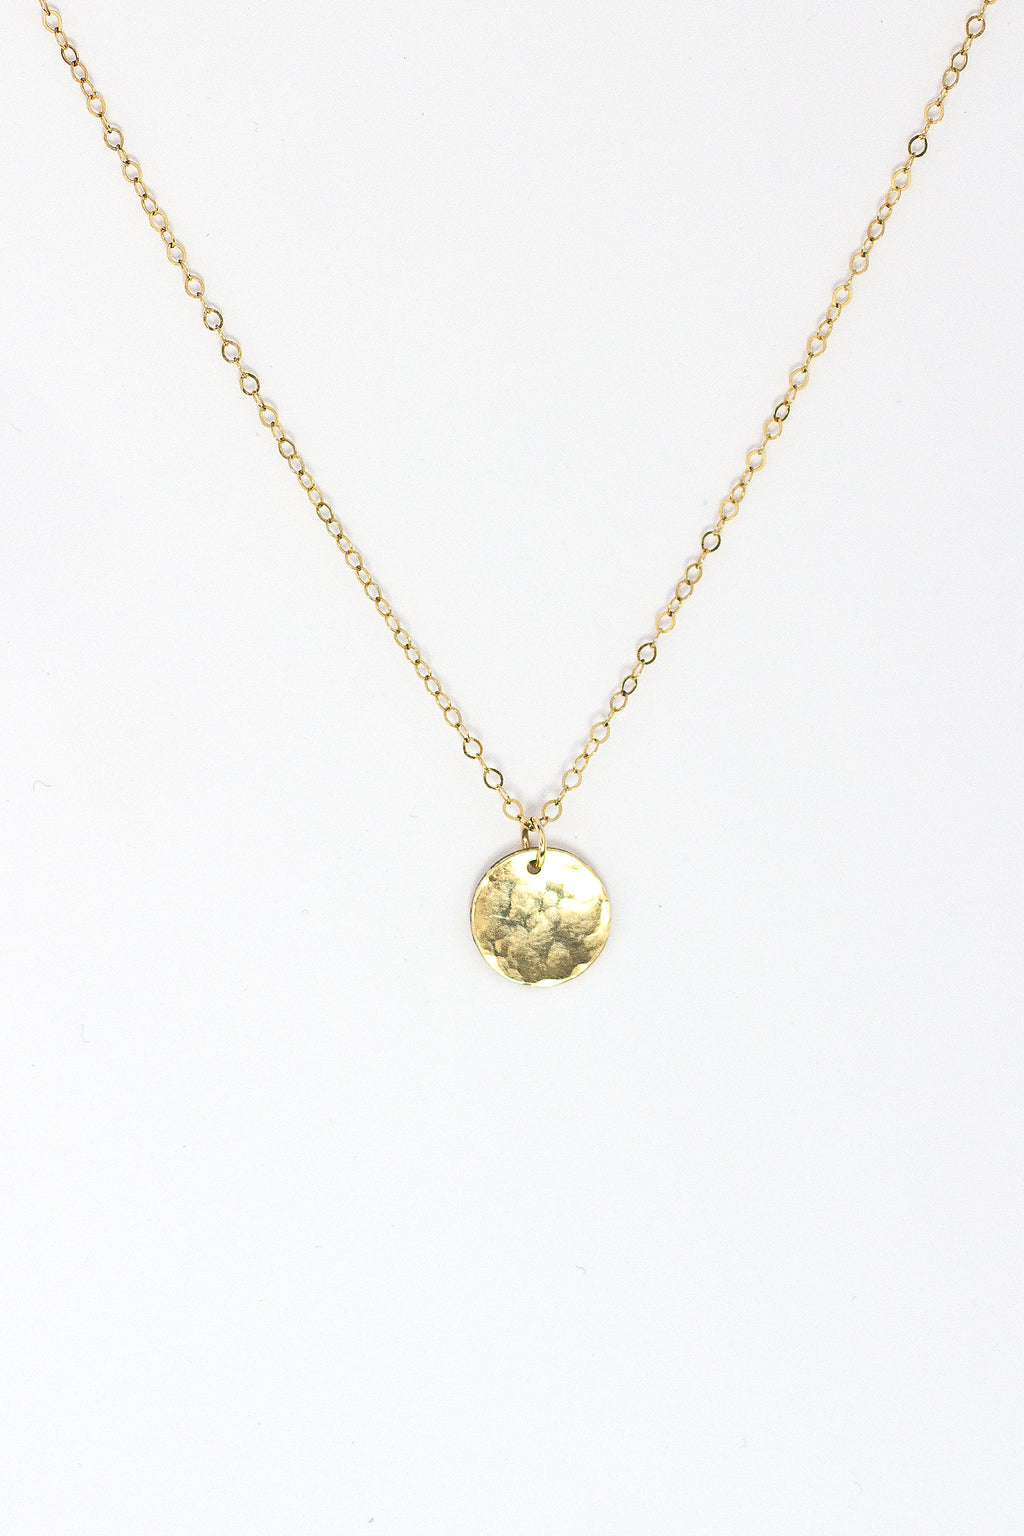 Petite Hammered Disc Necklace - Christine Elizabeth Jewelry